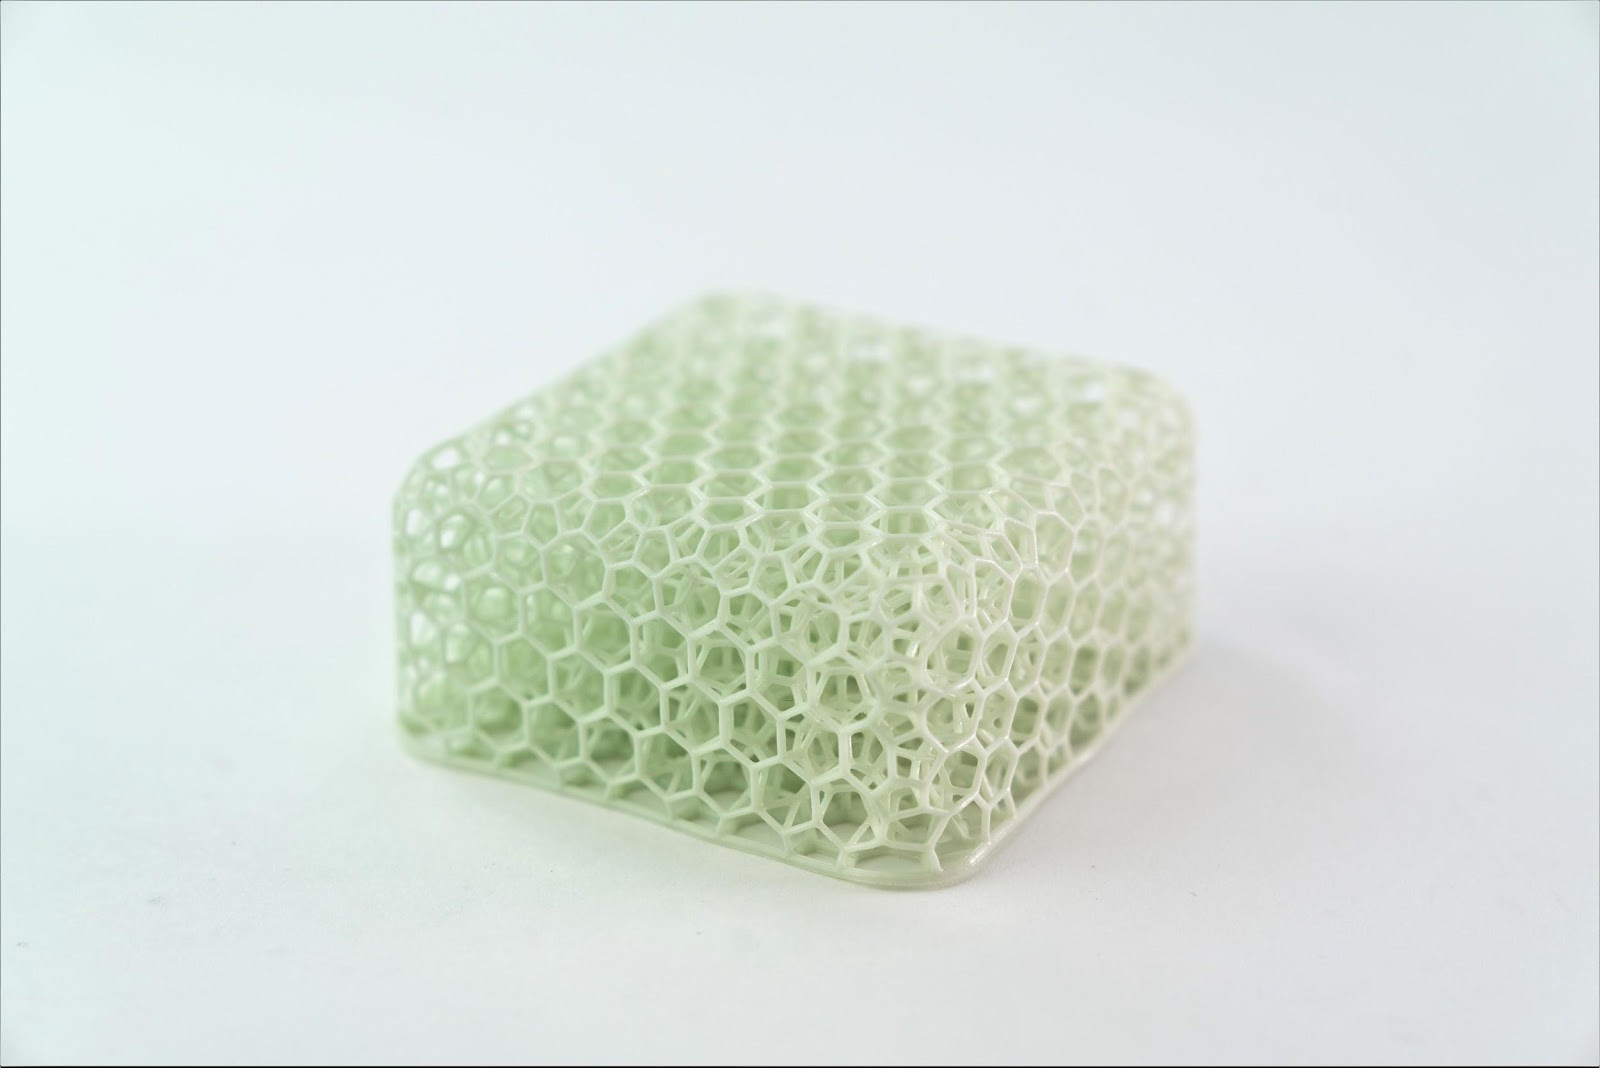 An elastomeric lattice puck, designed with the Carbon Design Engine™ and printed with Carbon EPU 41 resin.